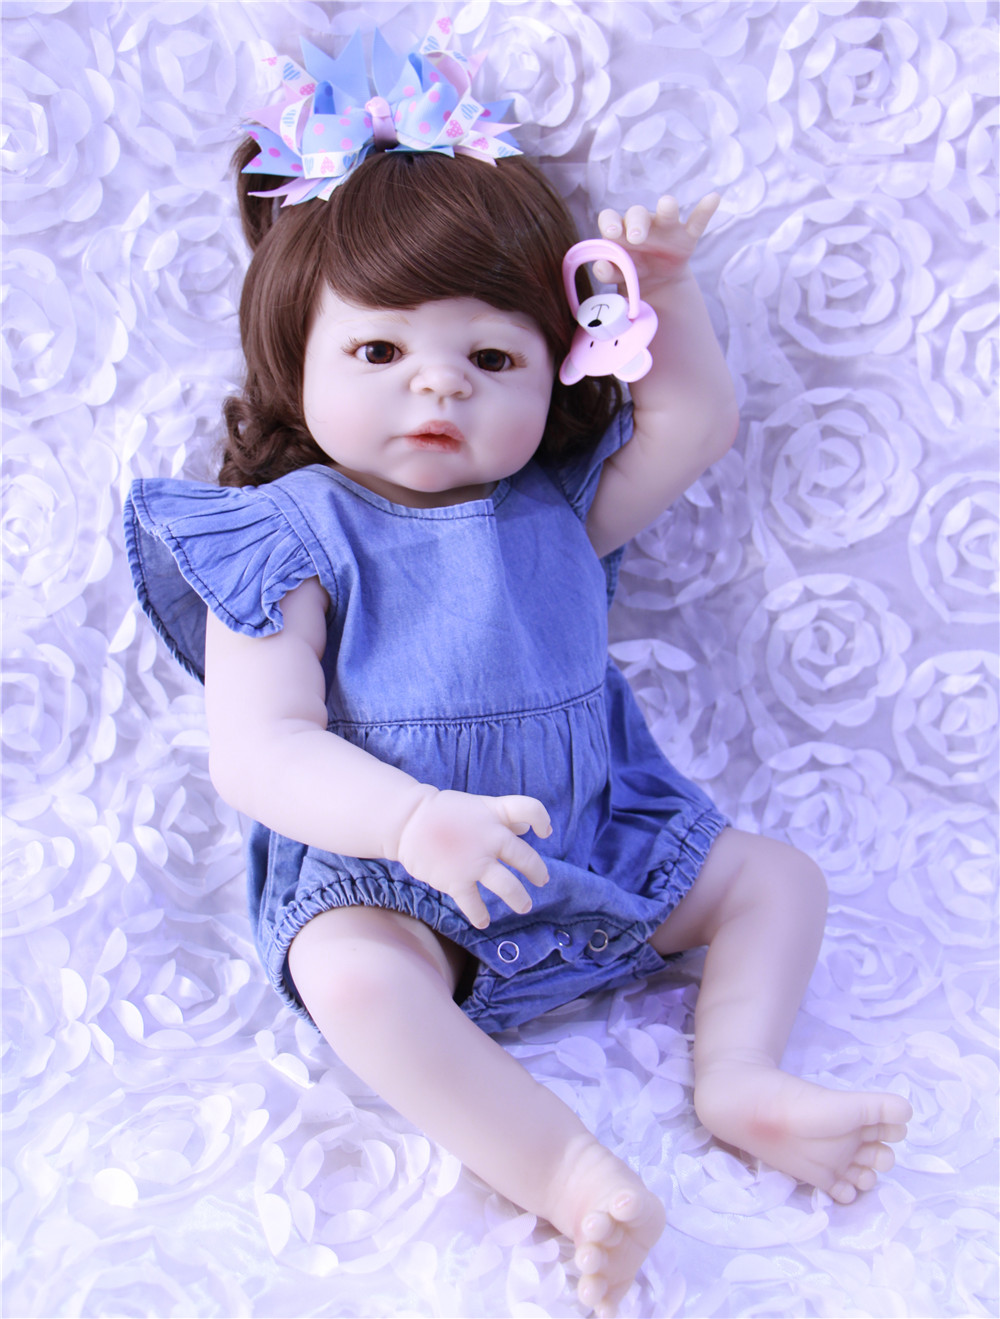 2255cm bebe gift doll reborn full Silicone Reborn babies With Dressed in Nice clothes Lifelike newborn babies girls toys2255cm bebe gift doll reborn full Silicone Reborn babies With Dressed in Nice clothes Lifelike newborn babies girls toys